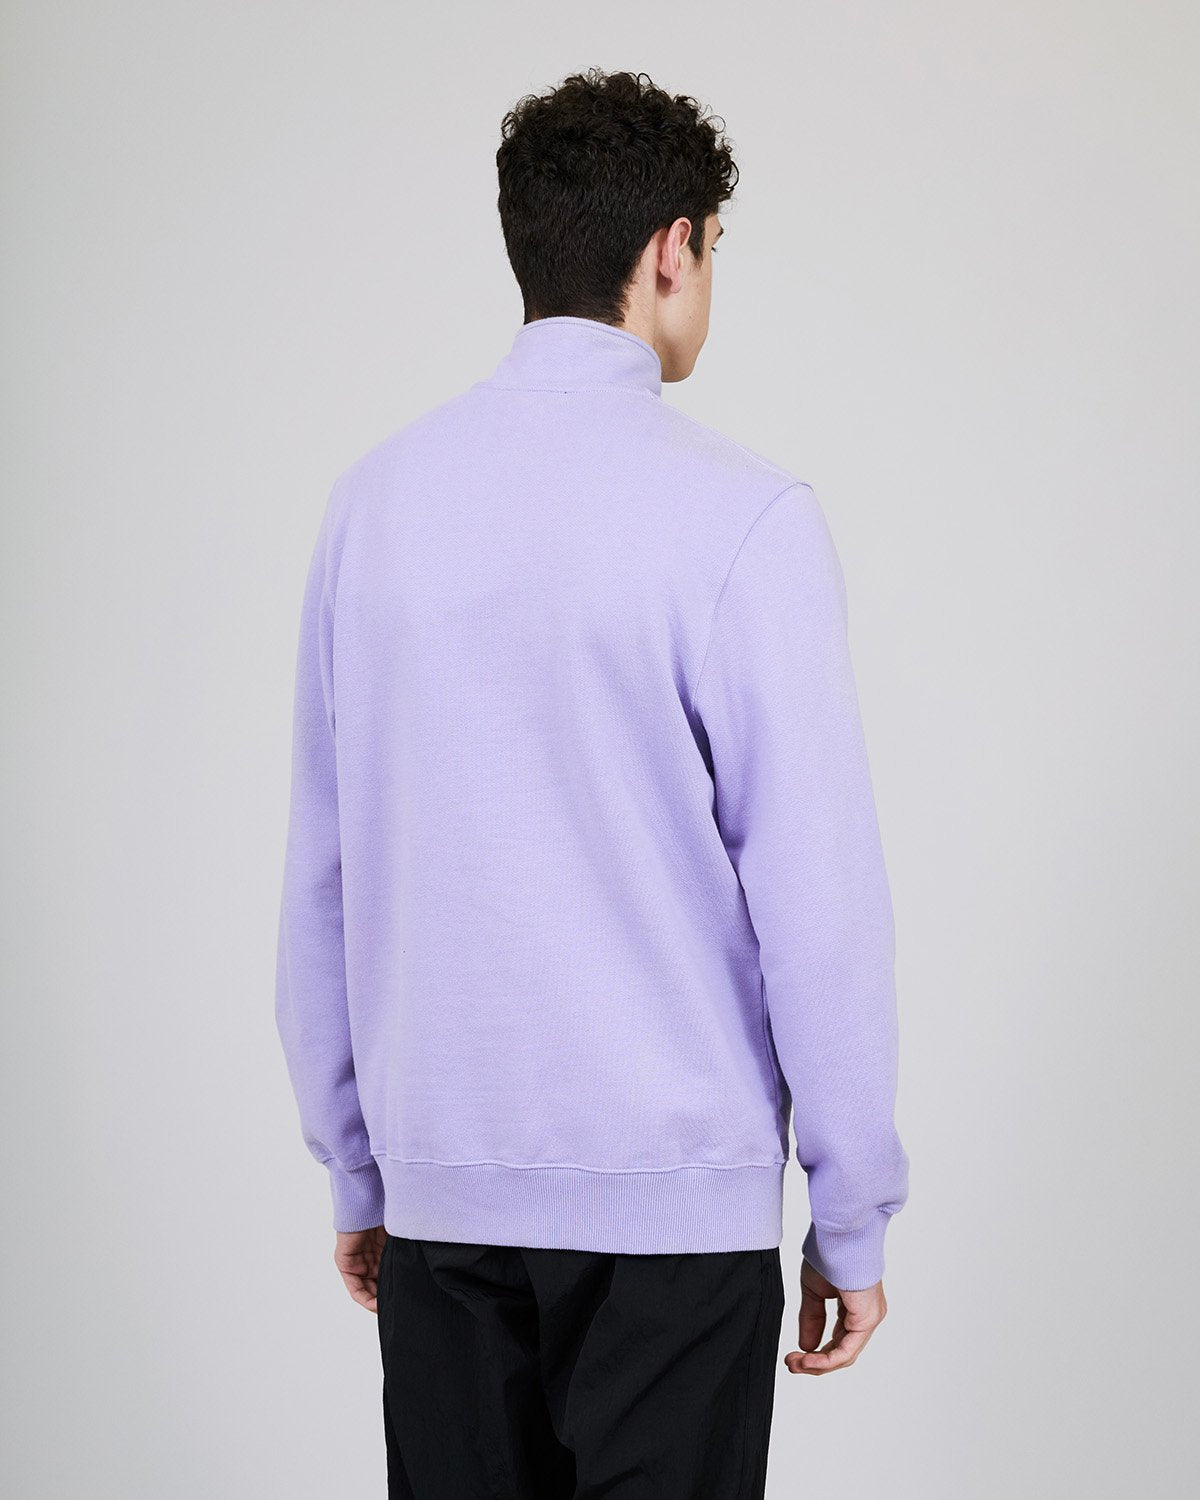 ØLÅF Zip Mock Sweater Purple, Portuguese fabric, Front pocket, 100% Cotton (320 grams/sqm), Logo on the front, New Fleece fabric, Post Wash, Made in Portugal